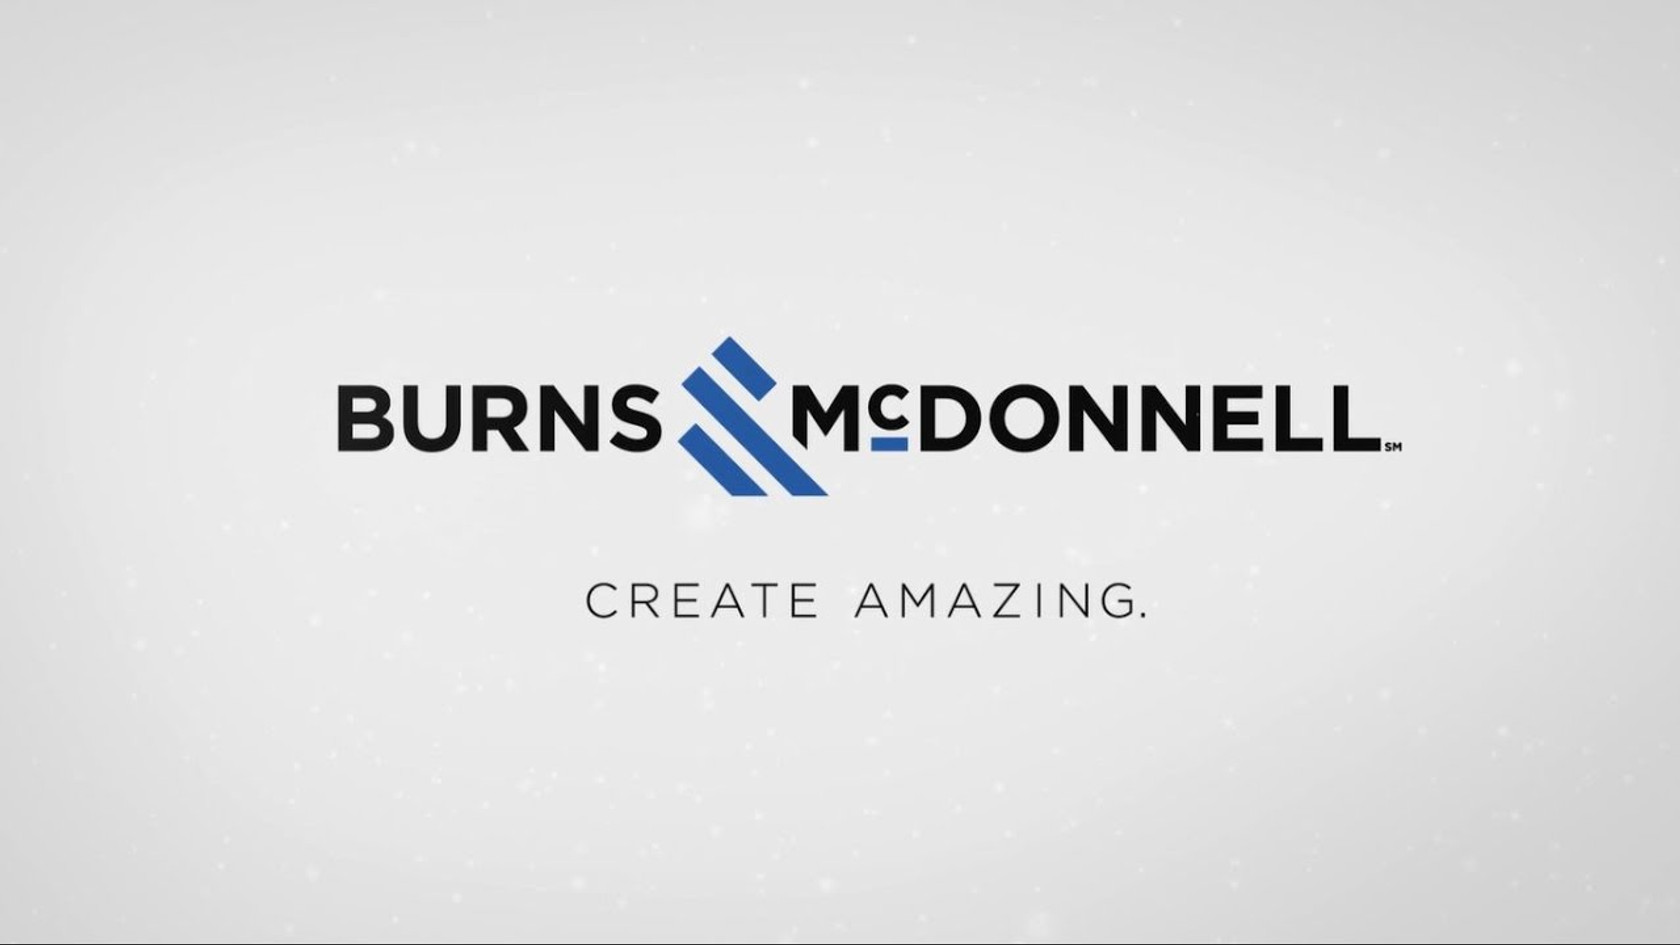 Burns & McDonnell is a full-service engineering, architecture, construction, environmental and consulting solutions firm, based in Kansas City, Missouri.